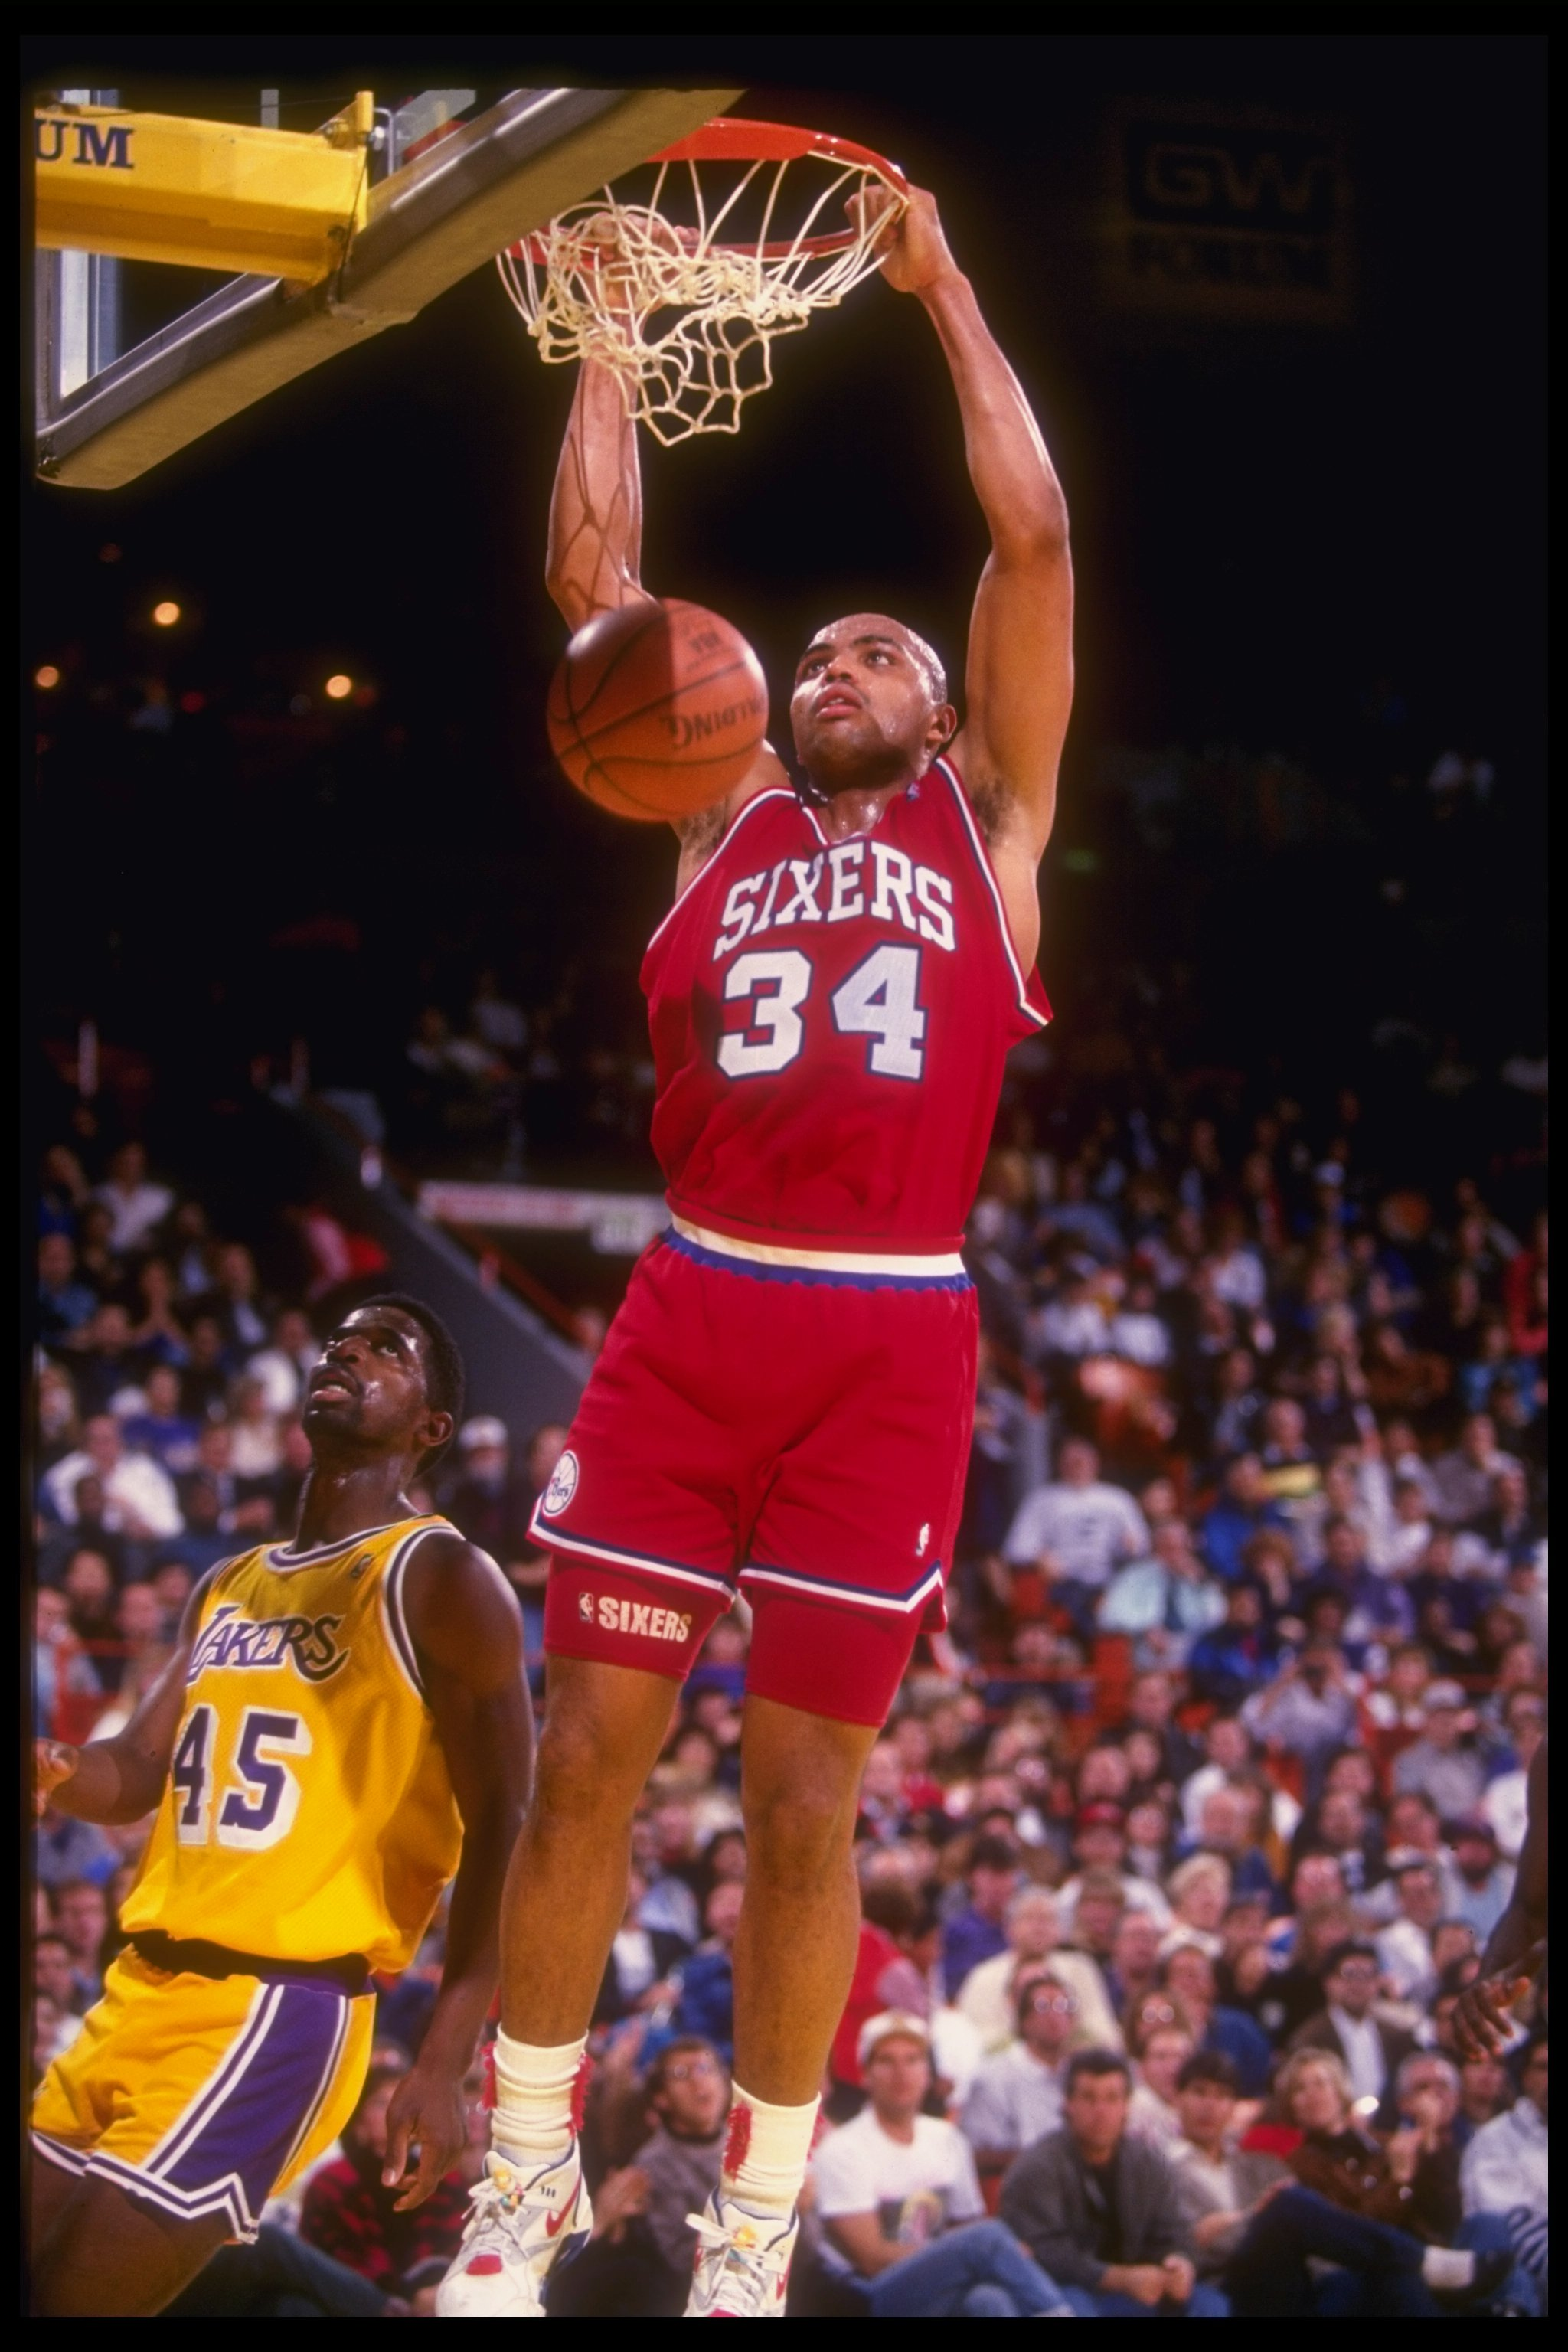 30 Dec 1990: Forward Charles Barkley of the Philadelphia 76ers sinks the ball during a game against the Los Angeles Lakers at the CoreStates Spectrum in Inglewood, California. The Lakers won the game, 115-107.